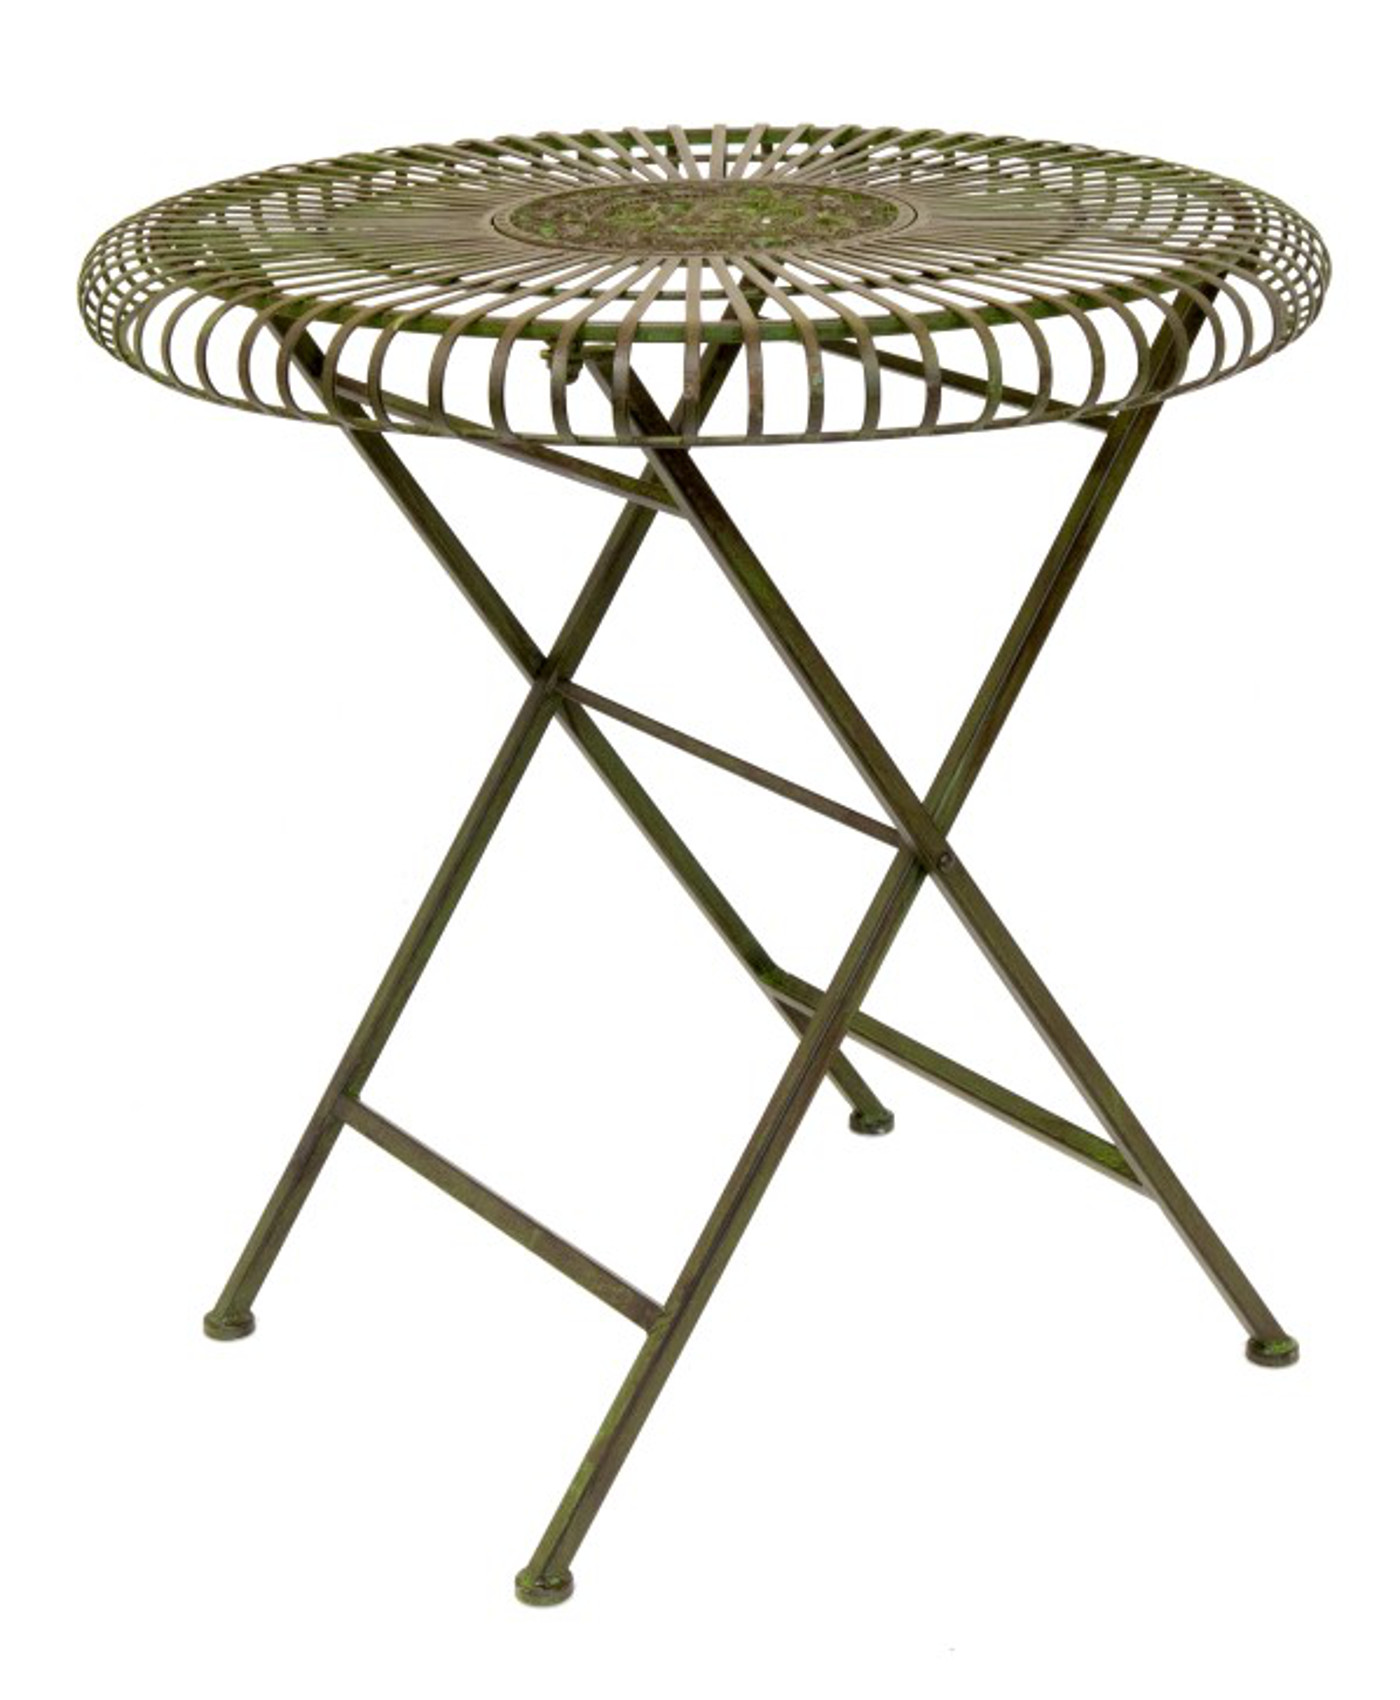 Bottle Green Round Table 2 Or 4 Folding Chairs Wrought